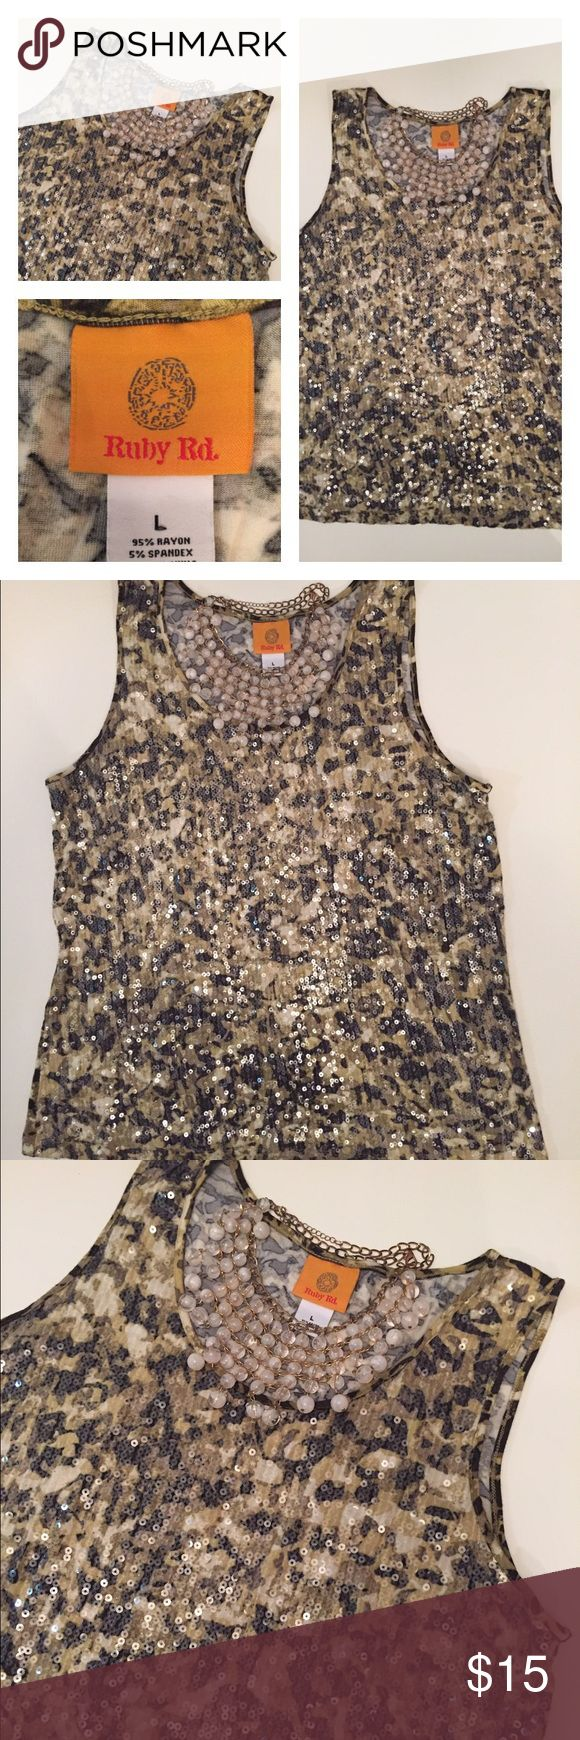 Ruby Rd Camouflage Sequin Tank Top Large Amazing knit tank top full of sequins by Ruby Rd.  Camouflage print.  Size: large. ruby rd Tops Tank Tops